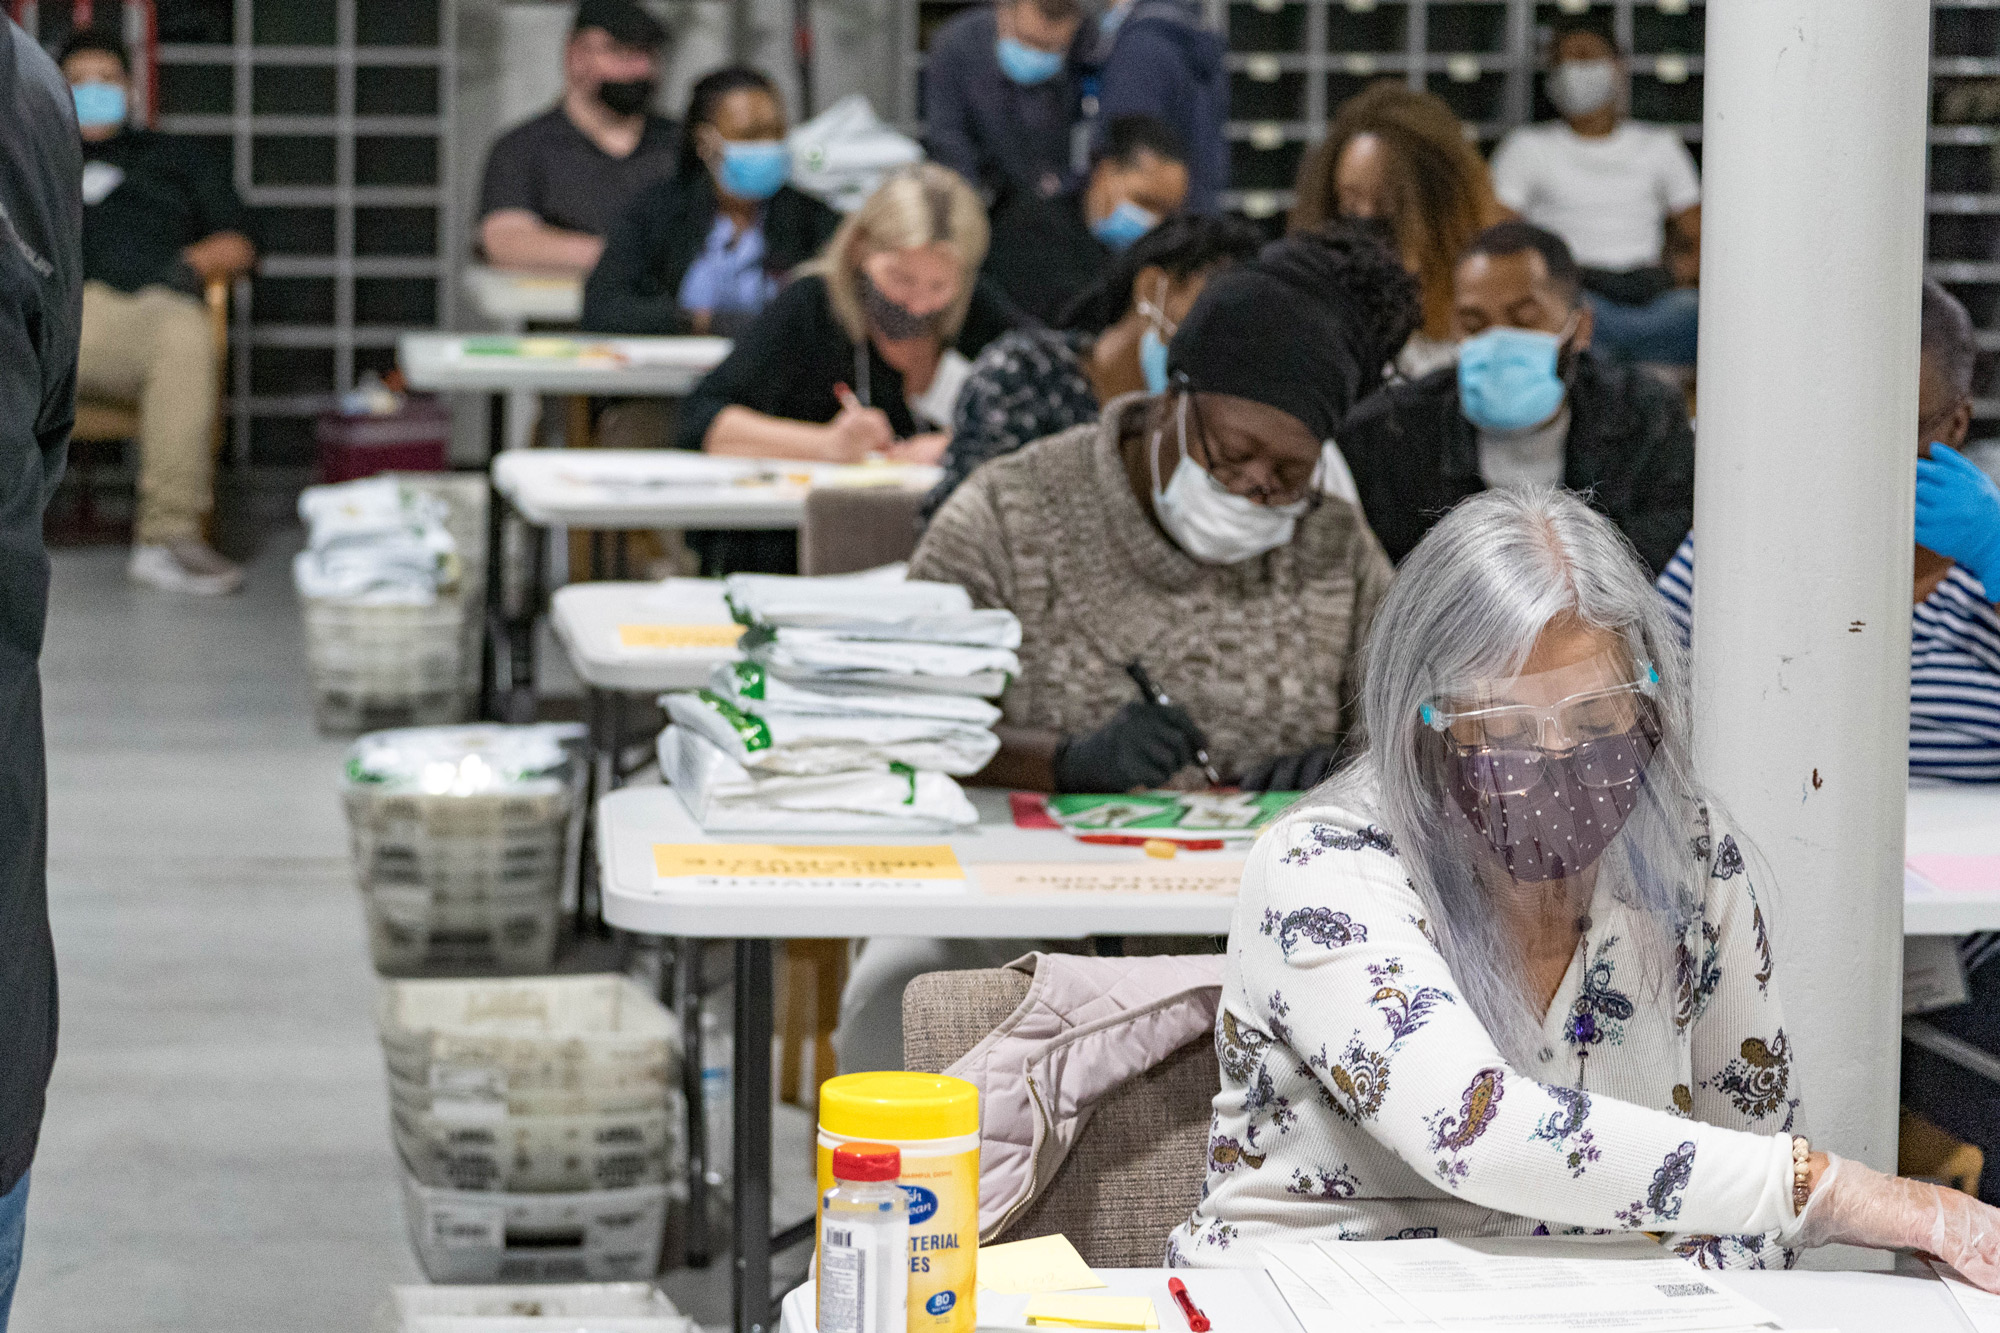 Gwinnett County election workers handle ballots as part of the recount for the 2020 presidential election at the Beauty P. Baldwin Voter Registrations and Elections Building on November 16 in Lawrenceville, Georgia.